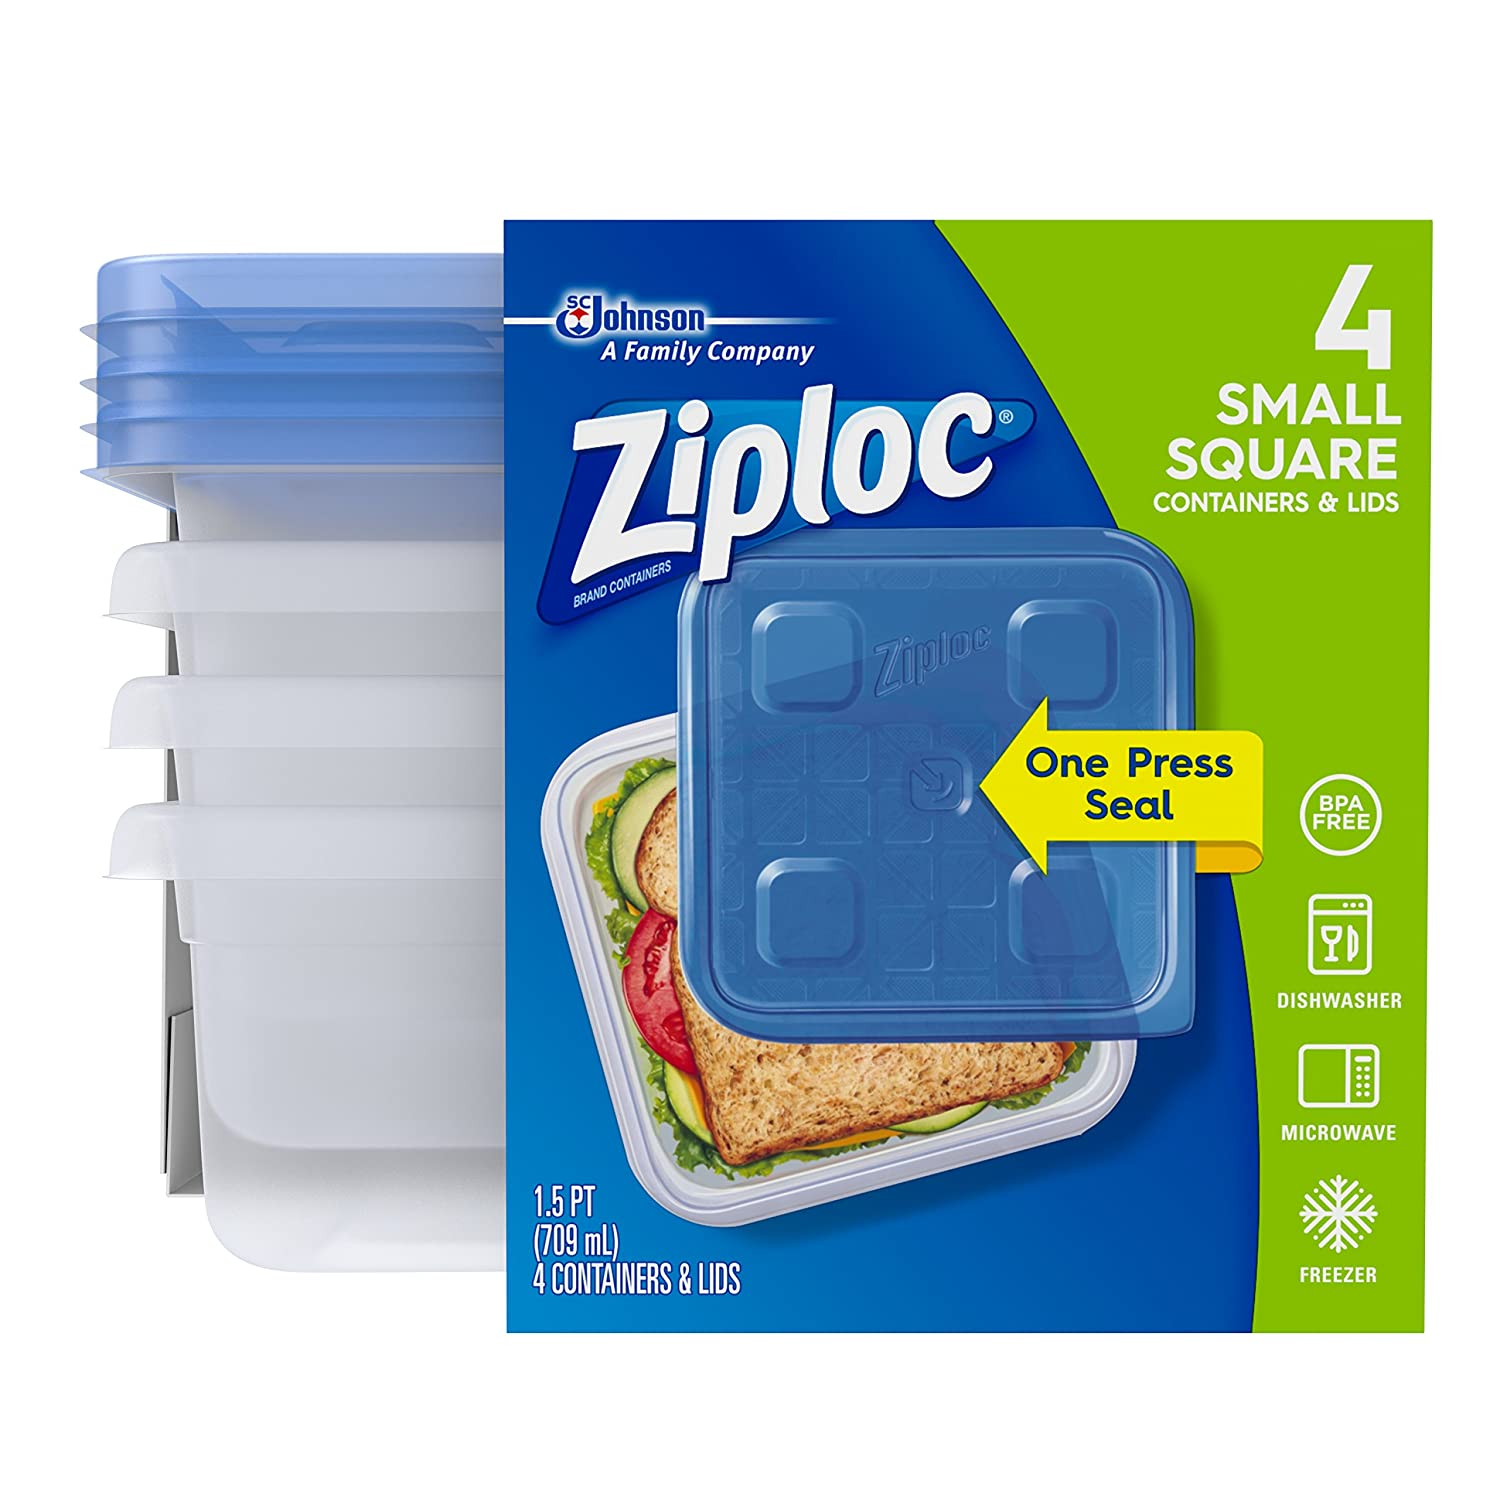 Ziploc Food Storage Container, Microwave and Dishwasher Safe, BPA Free, Small, Square, 4 Count